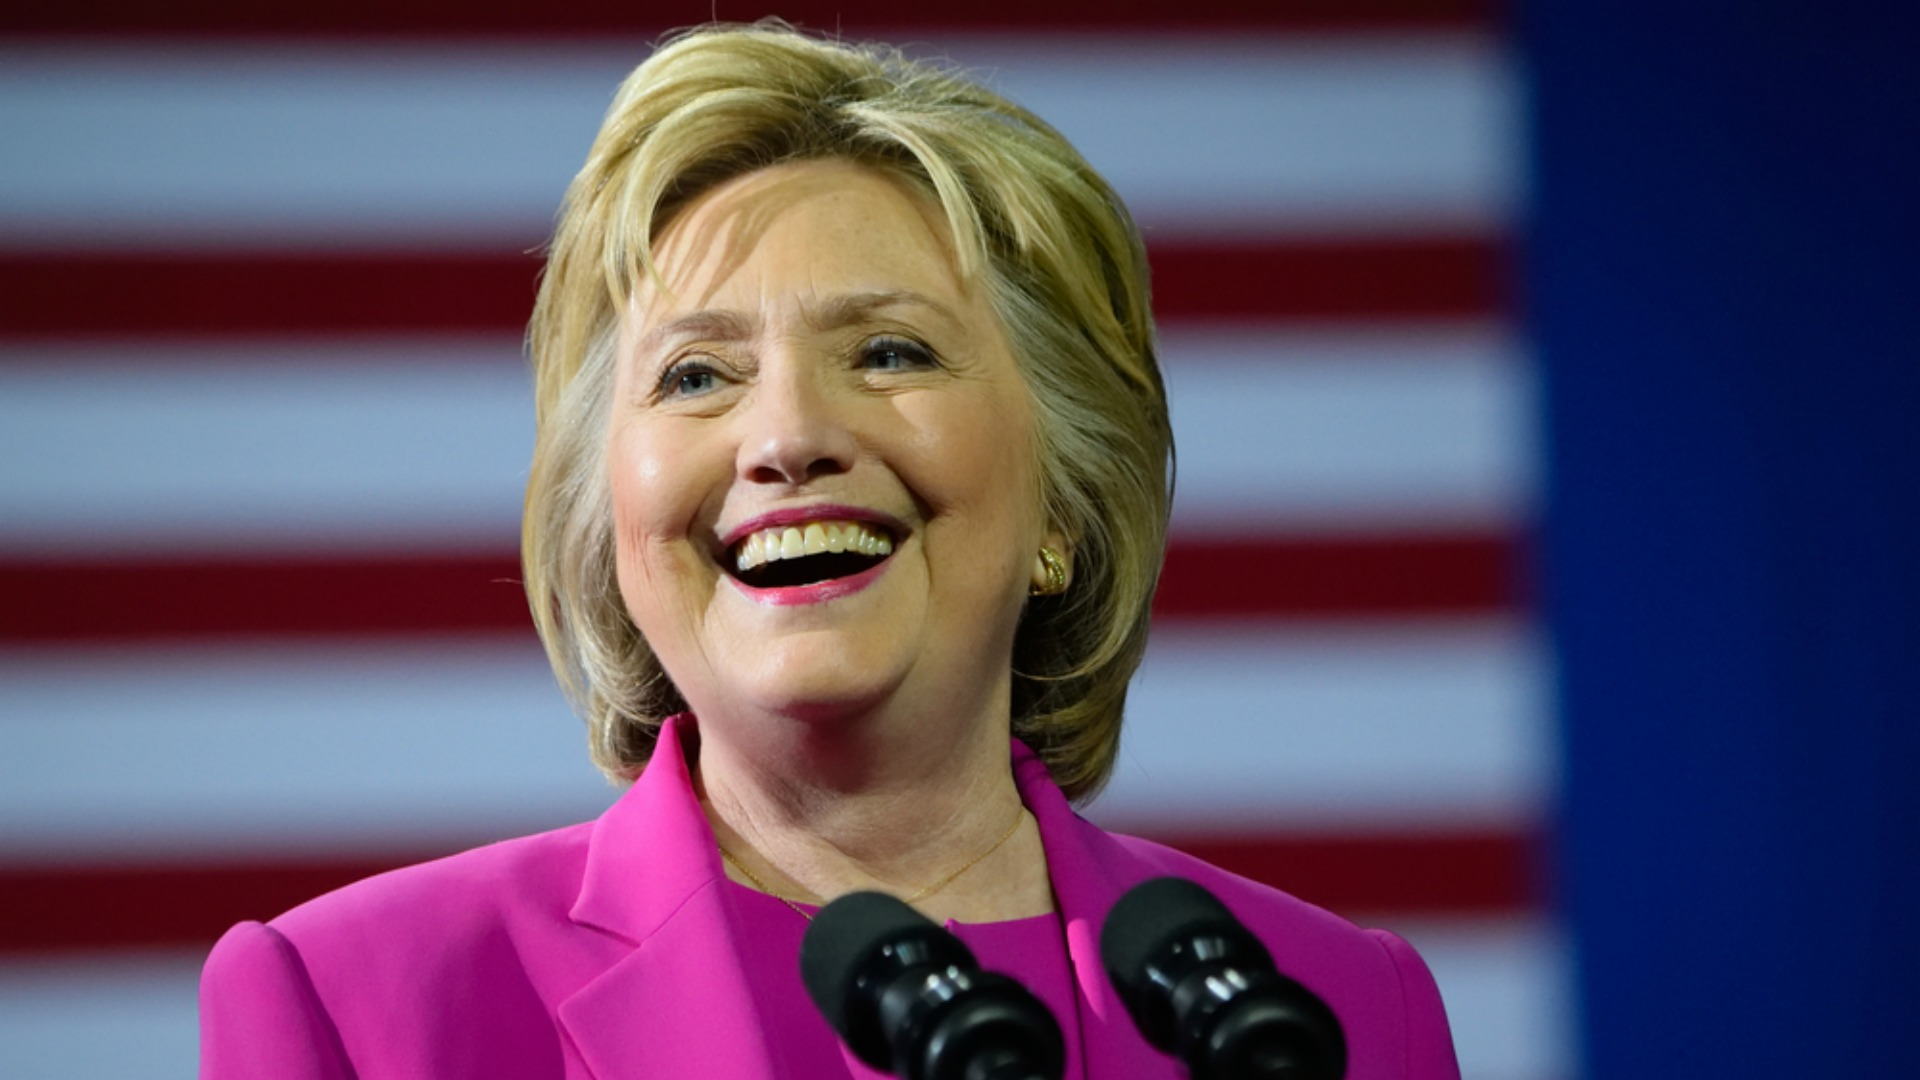 A: Real Hillary!